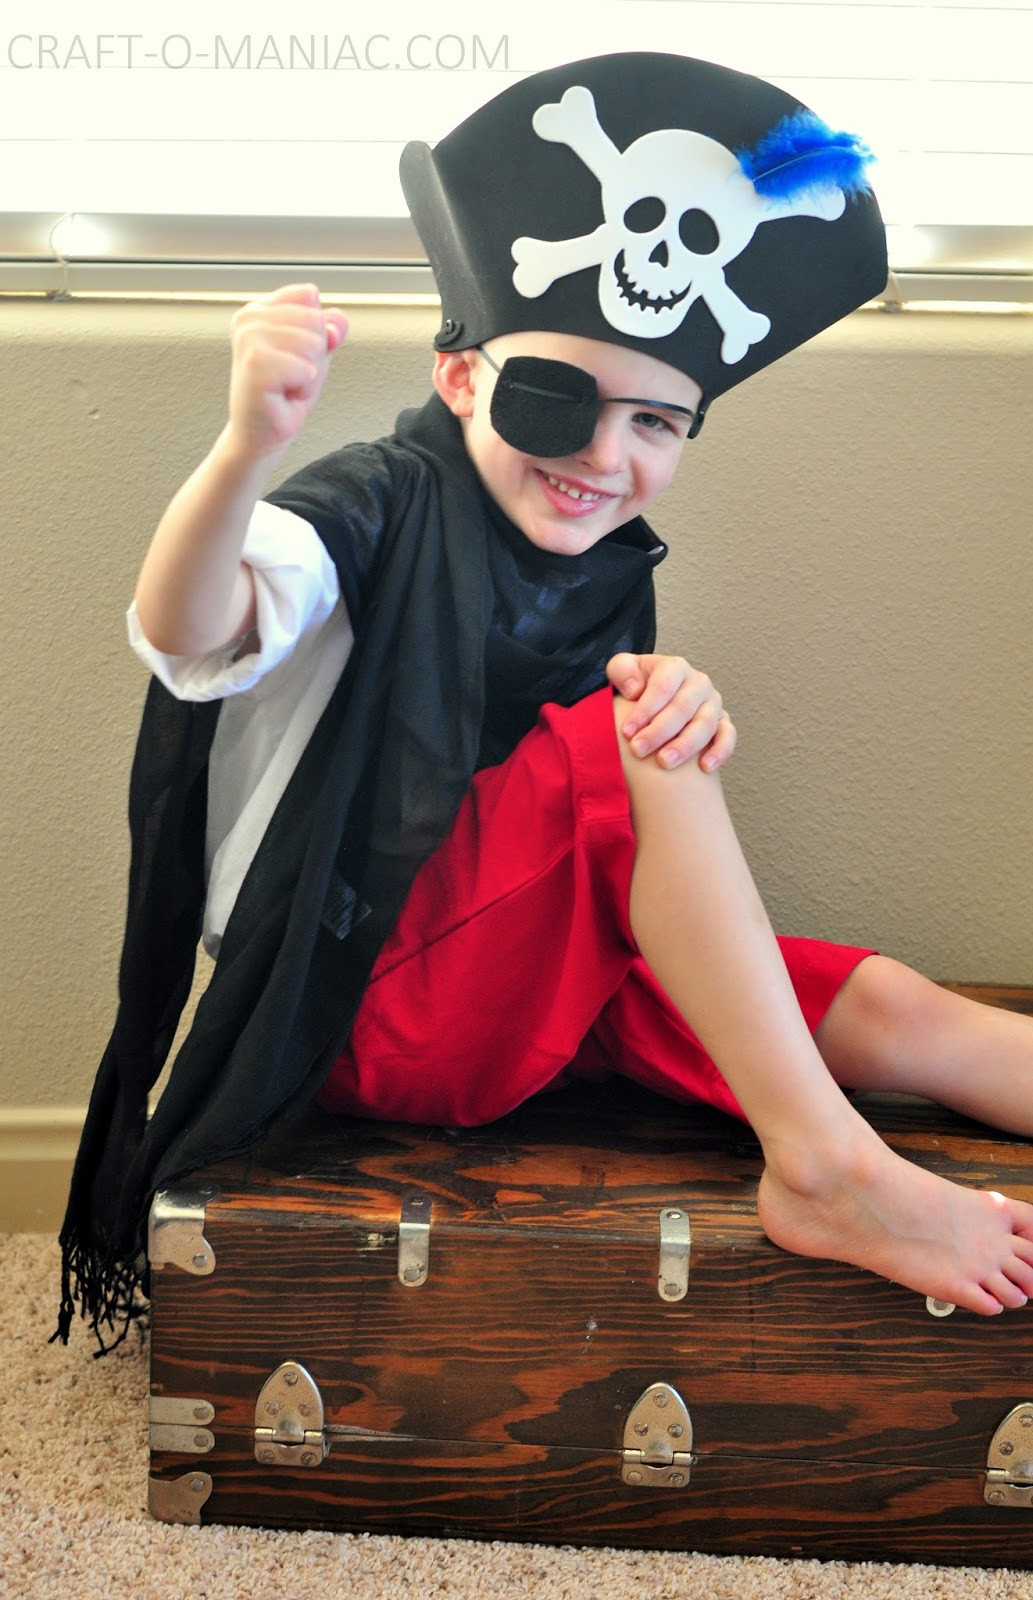 Best ideas about DIY Pirate Costumes For Kids . Save or Pin Kids Activity Dress Up Costumes Craft O Maniac Now.